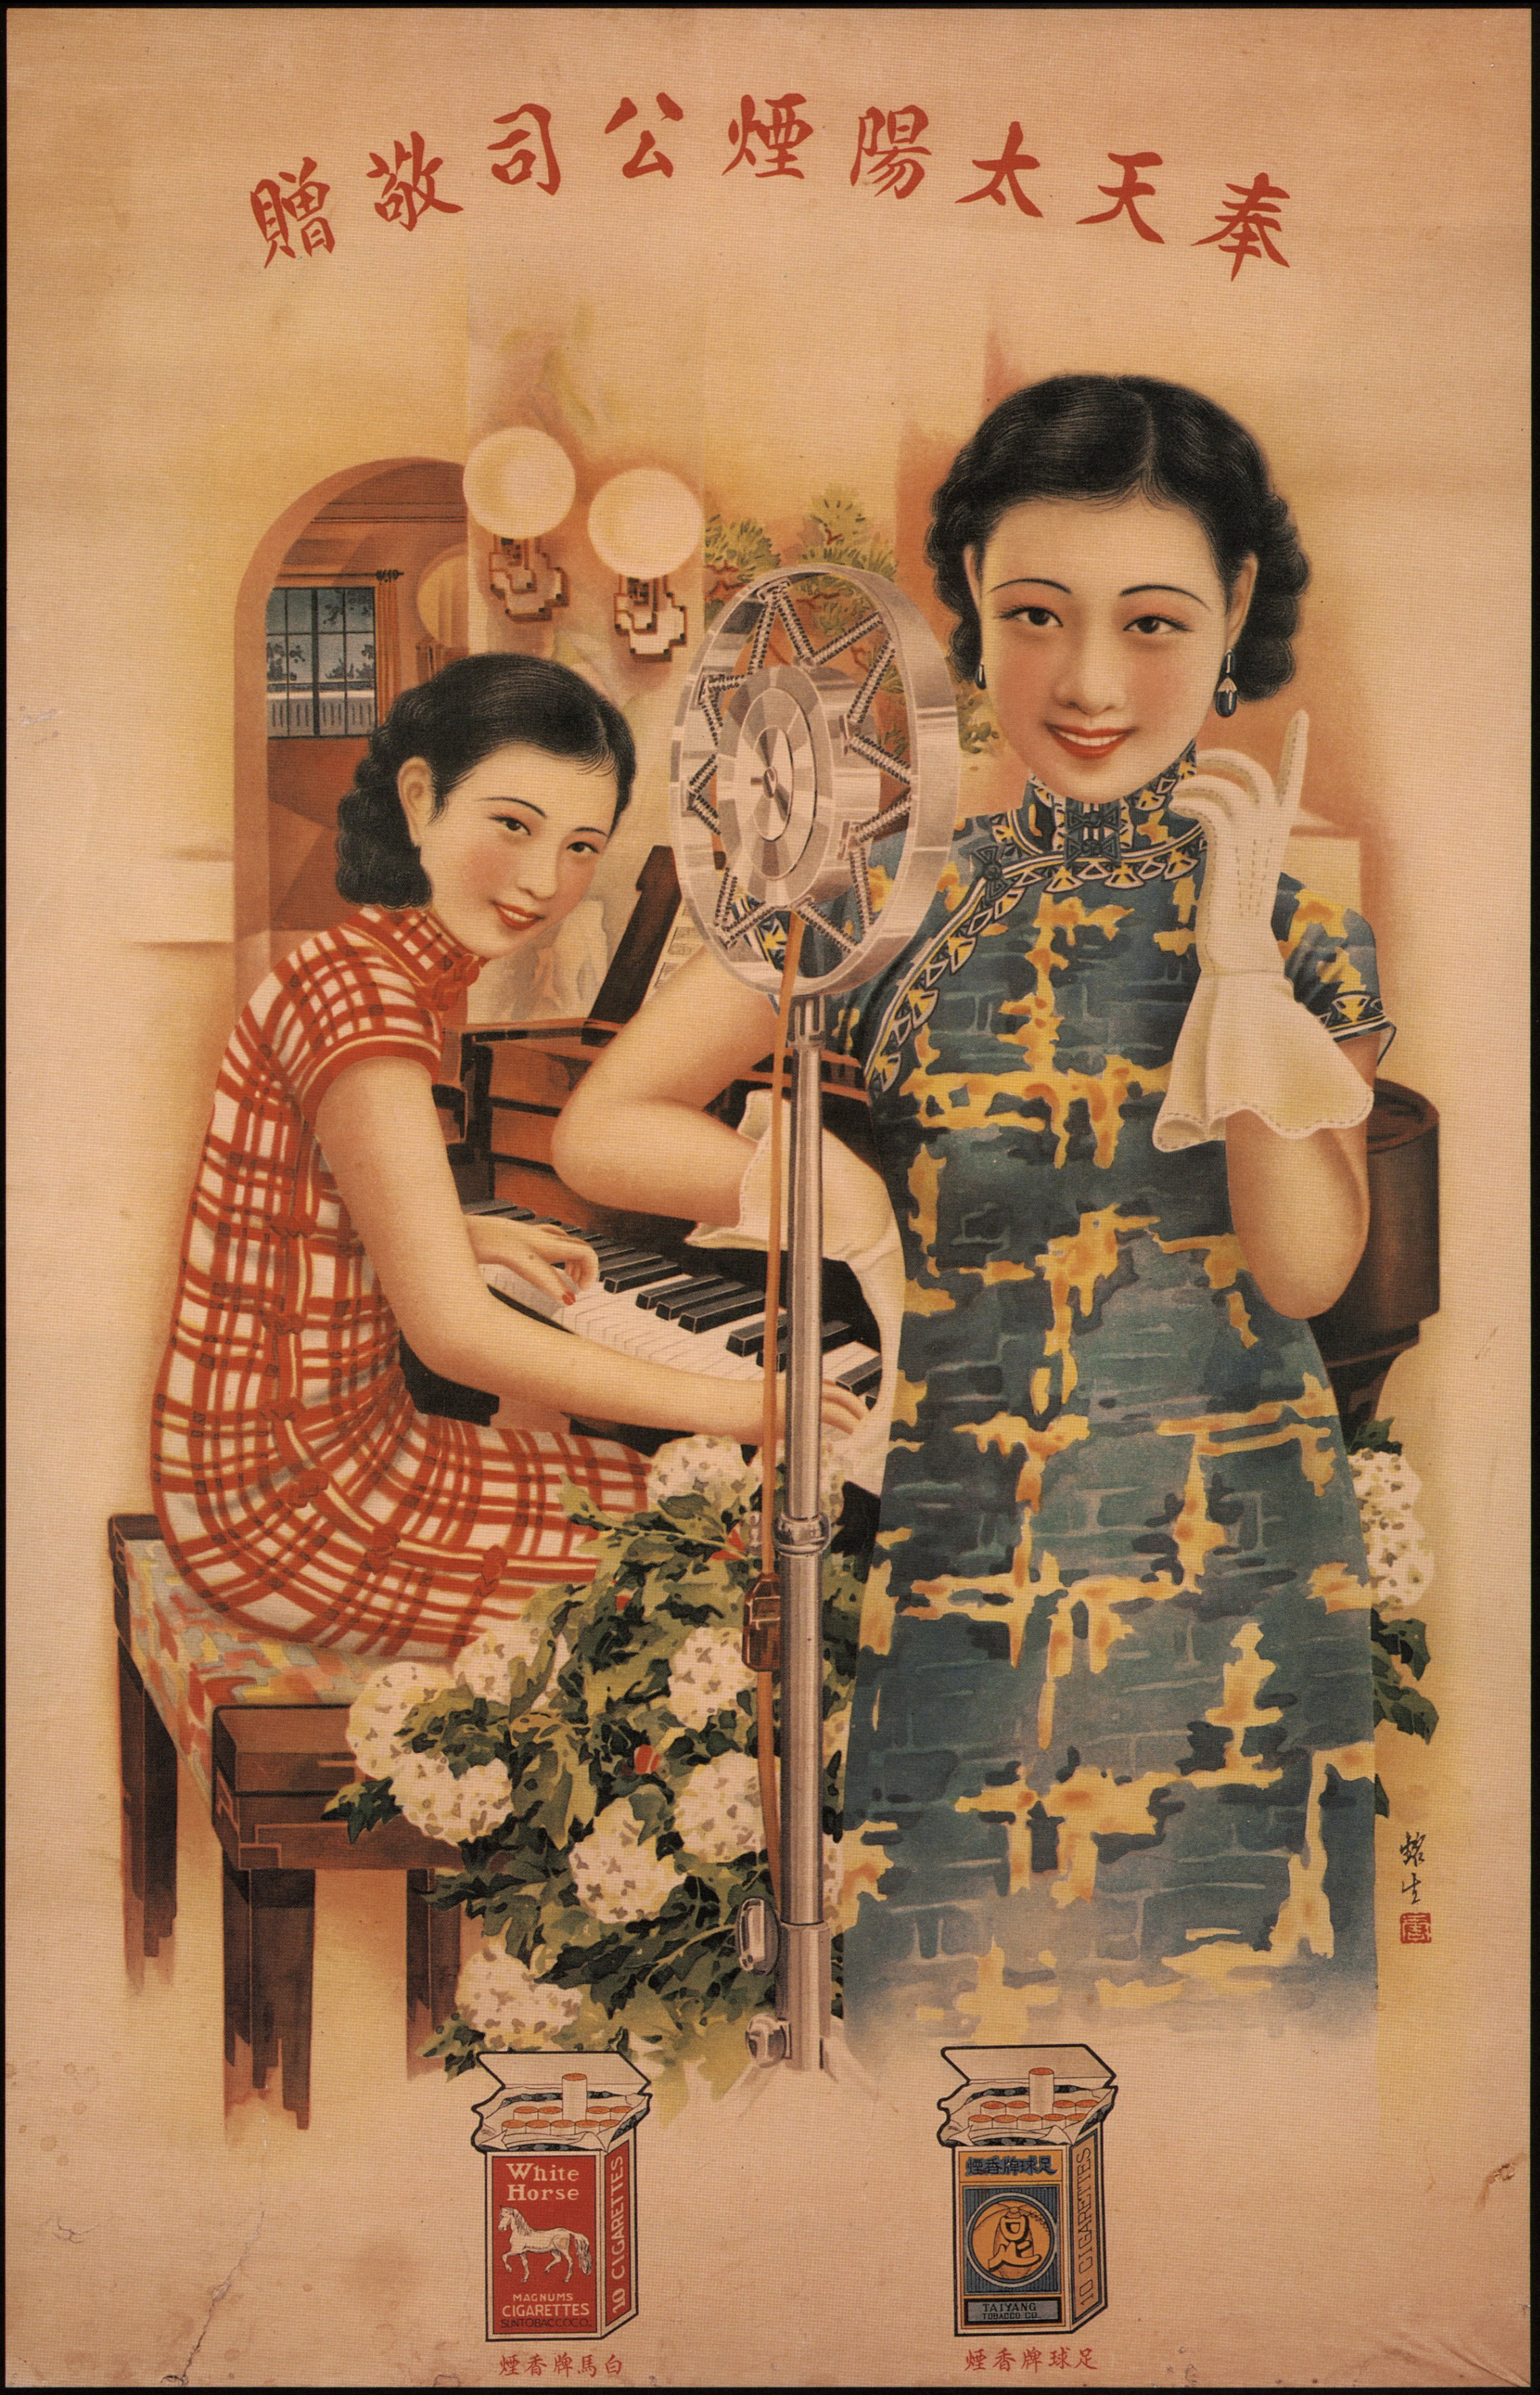 Sun-Tobacco-Company-China-Chinese-Vintage-Advertising-Poster